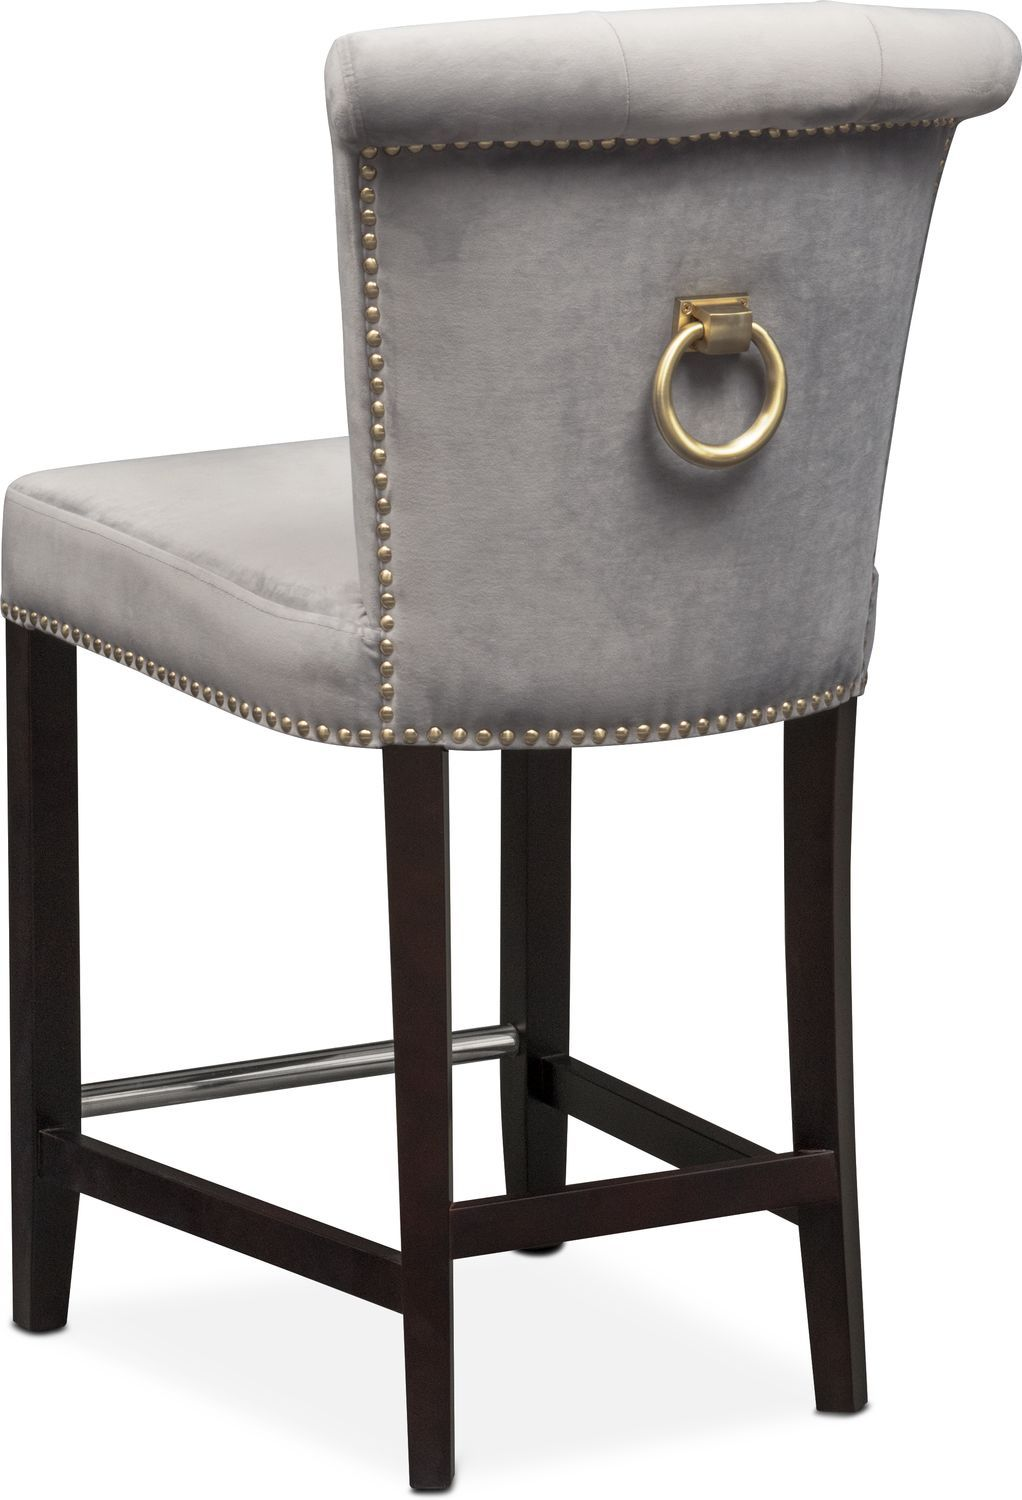 Put A Ring On It Outfit Your Dining Ensemble With The Polished Look Of The Calloway Counter Height Dining Room Tables Farmhouse Chairs Brown Living Room Decor